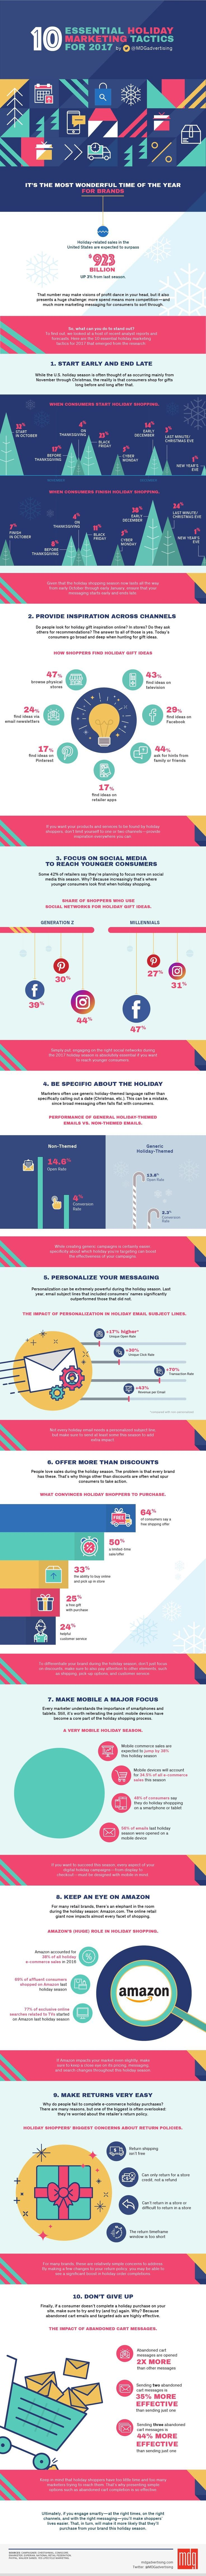 Marketing-Infographic-10-Essential-Holiday-MarketingTactics-for-2017.-🤶🎅🎄☃❄-Its-the-m Marketing Infographic : 10 Essential #Holiday #MarketingTactics for 2017. 🤶🎅🎄☃❄  It's the m...